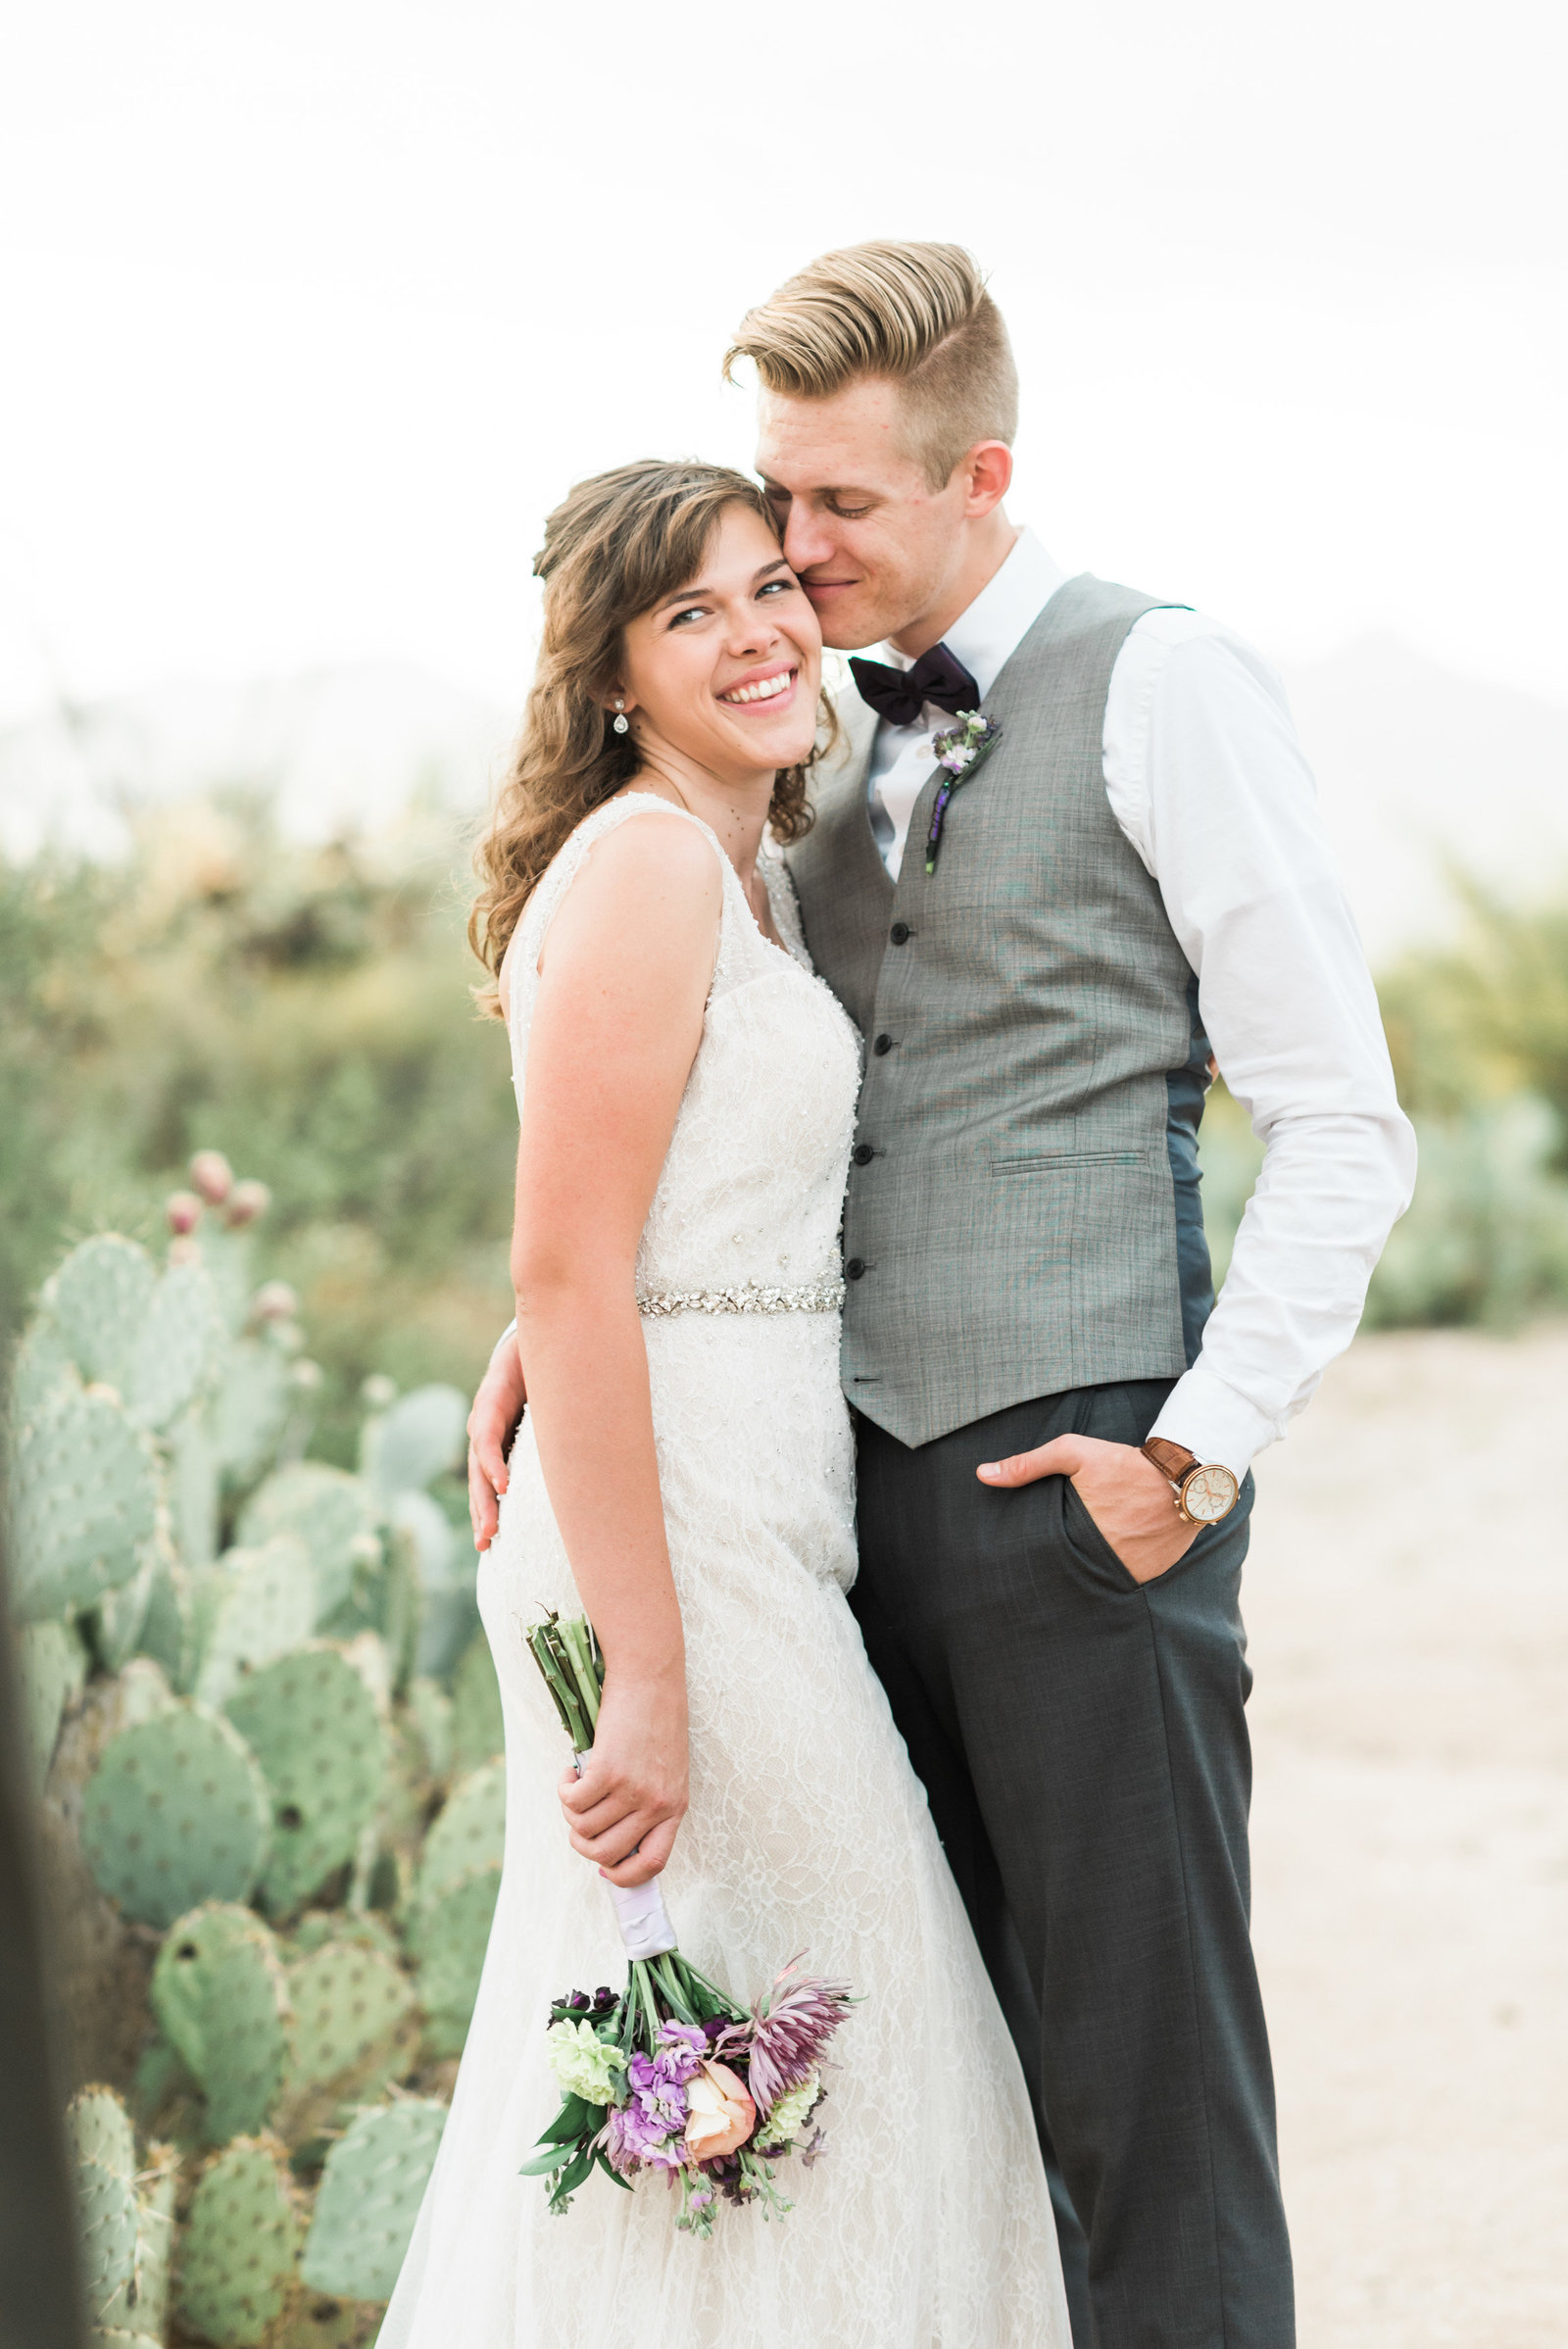 Case Park Desert Wedding Photo of Bride and Groom Snuggling